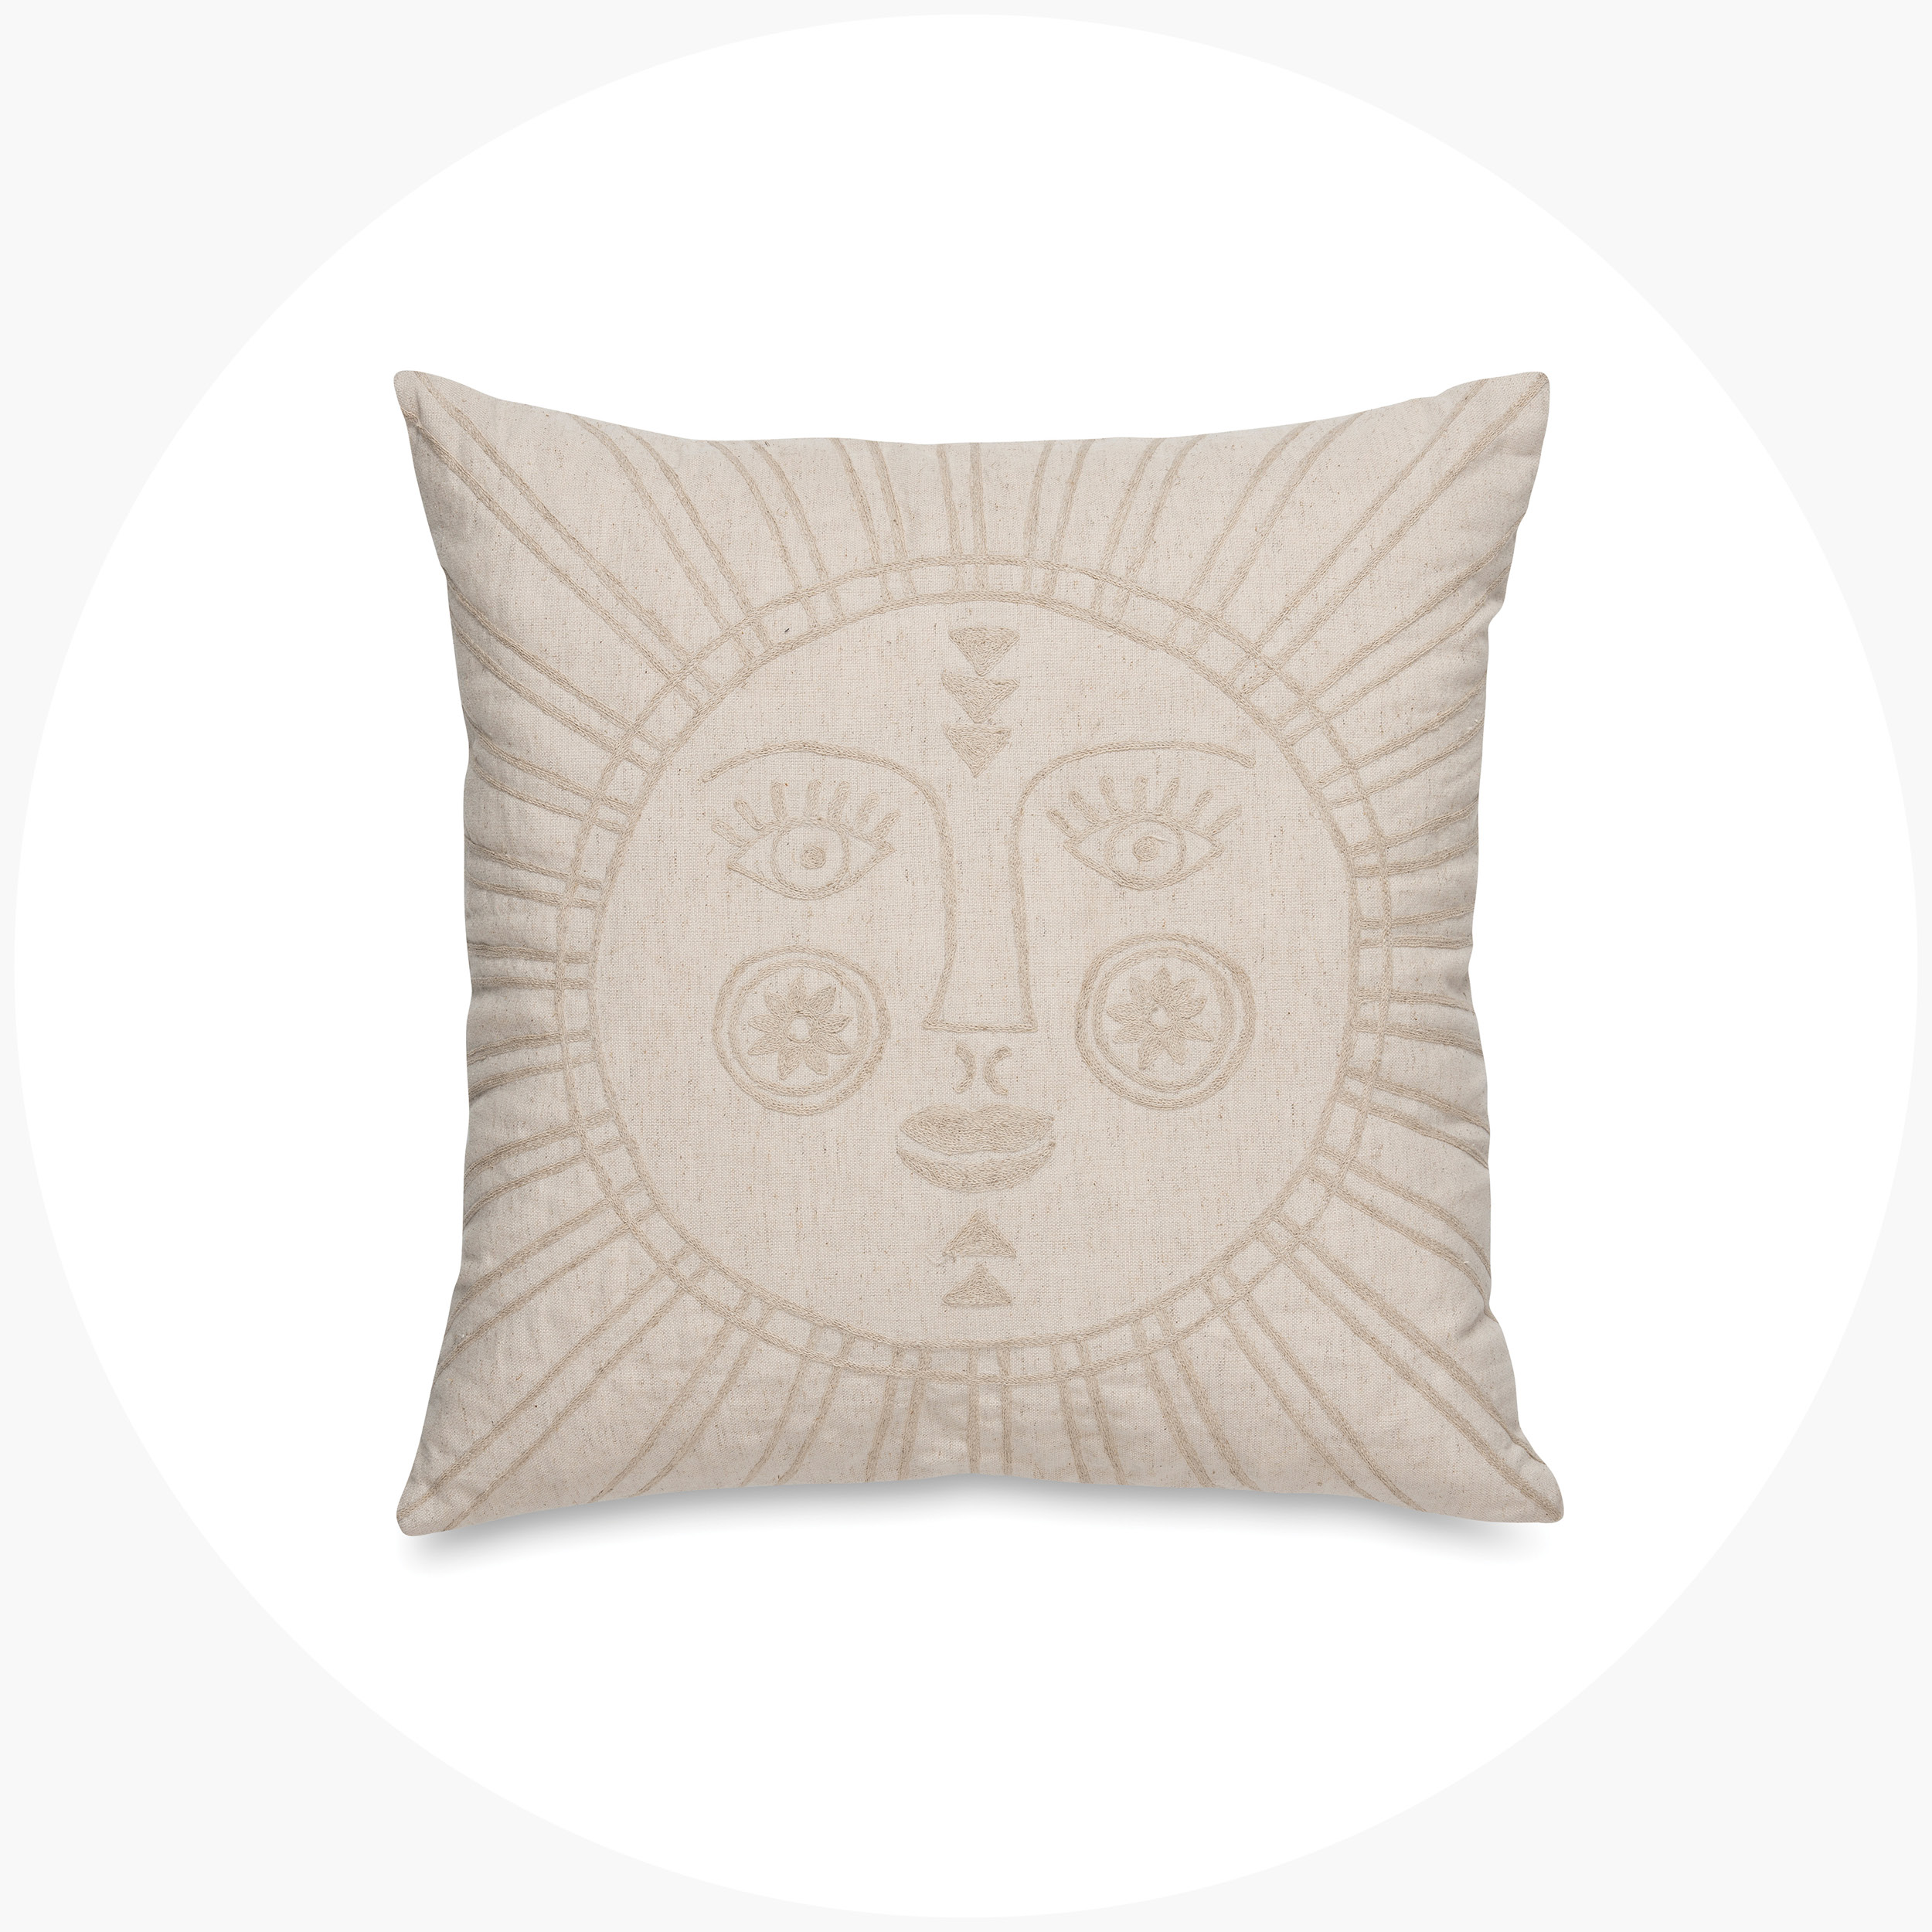 Sunshine Embroidered Cushion Cover  $69.90